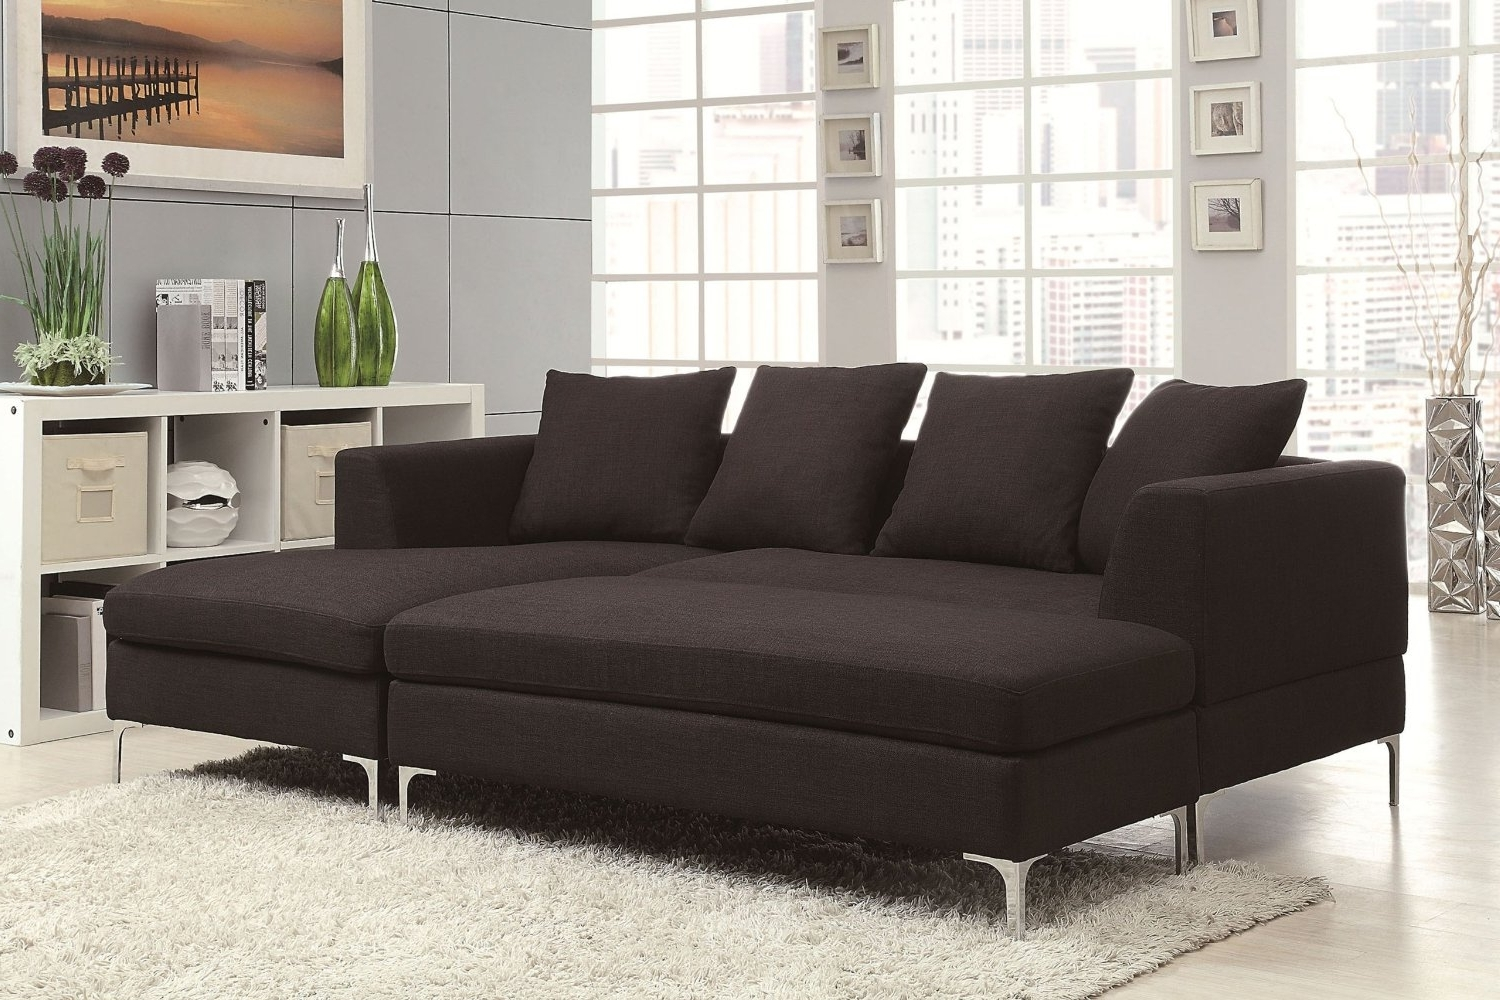 Beautiful Sectional Sofas With Chaise Lounge Gallery – Liltigertoo Inside Well Known Adjustable Sectional Sofas With Queen Bed (View 6 of 20)